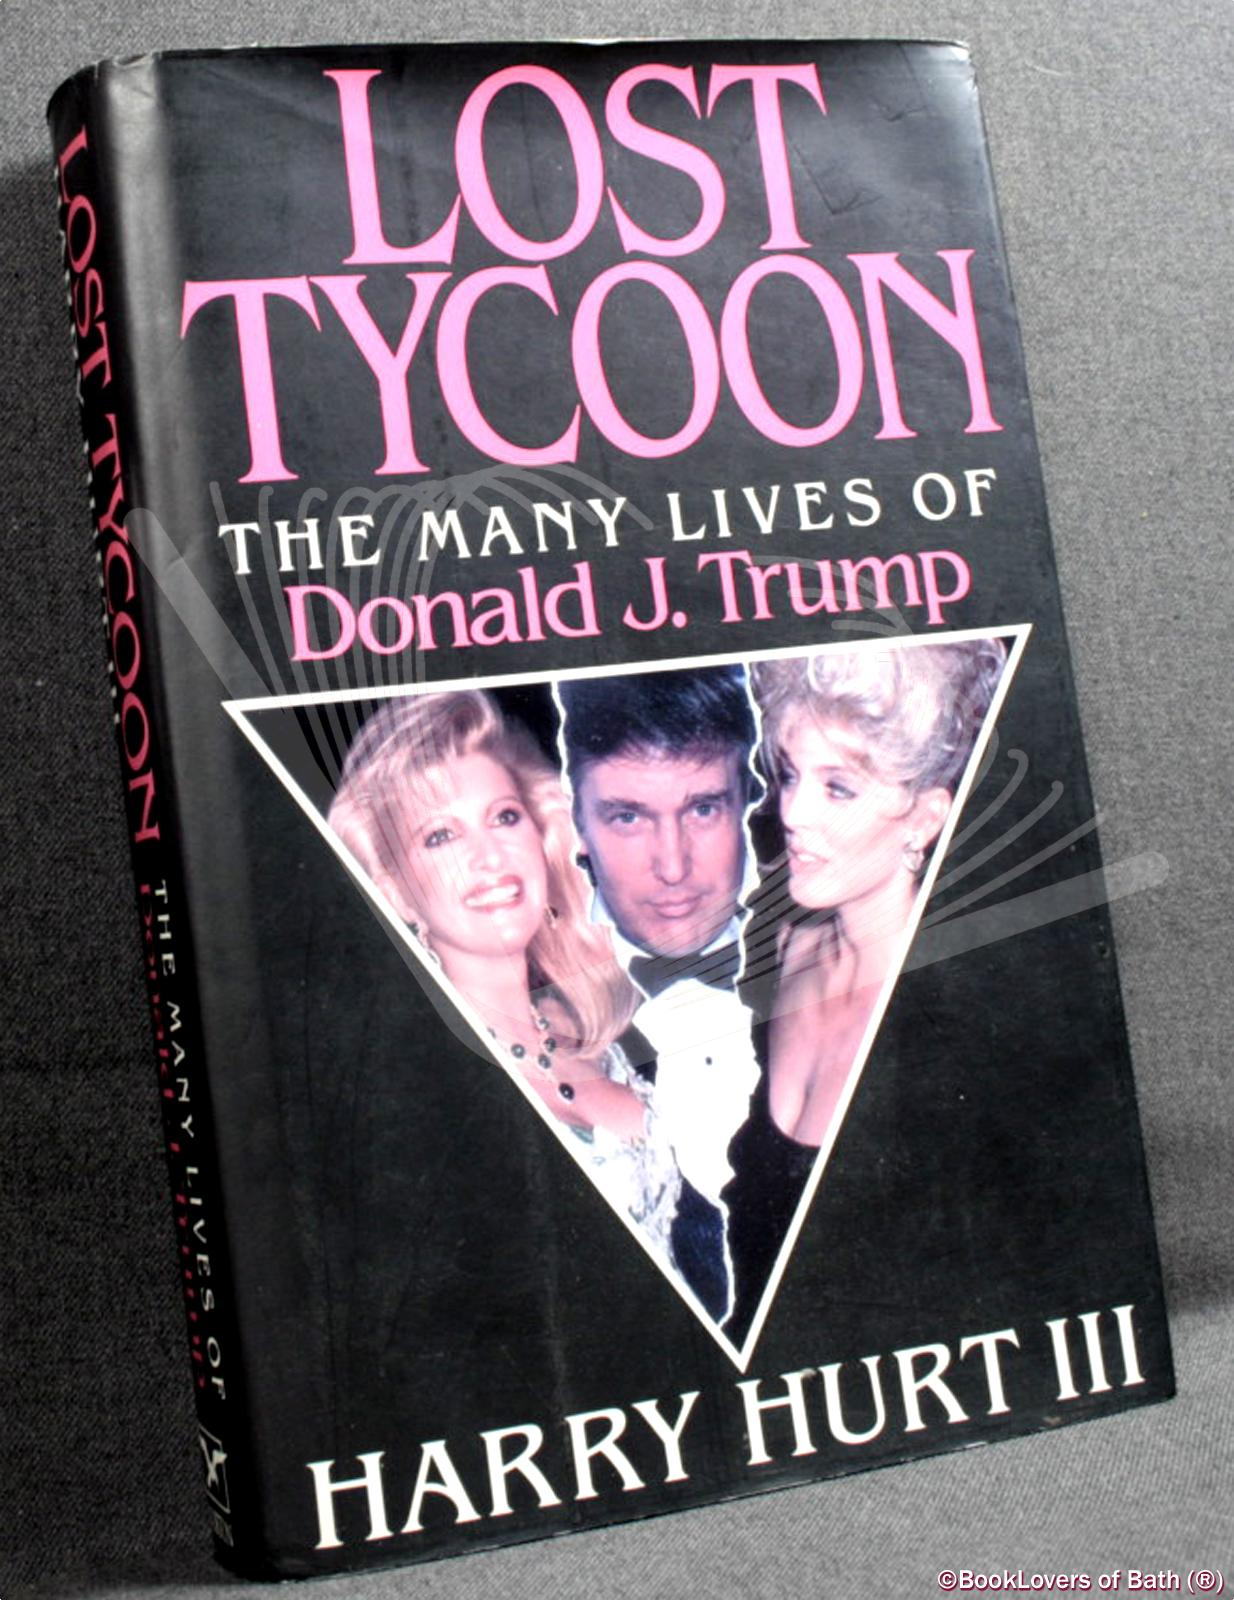 Lost Tycoon: The Many Lives of Donald J. Trump - Harry Hurt III